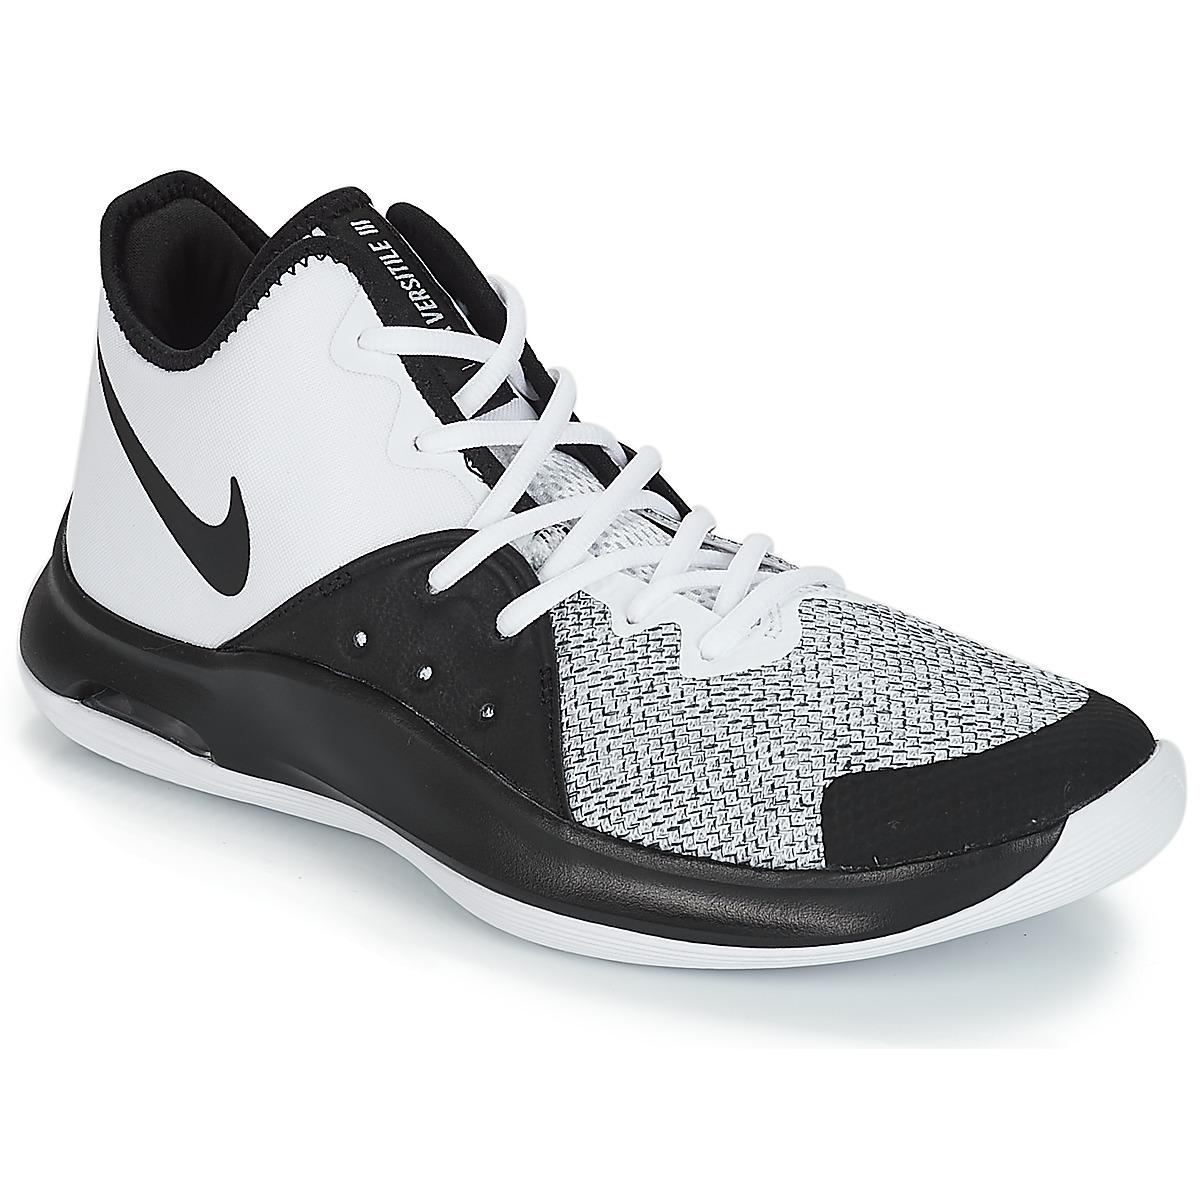 Details about Nike Air Versitile 3 Basketball Shoes Mens Trainers Sneakers Footwear